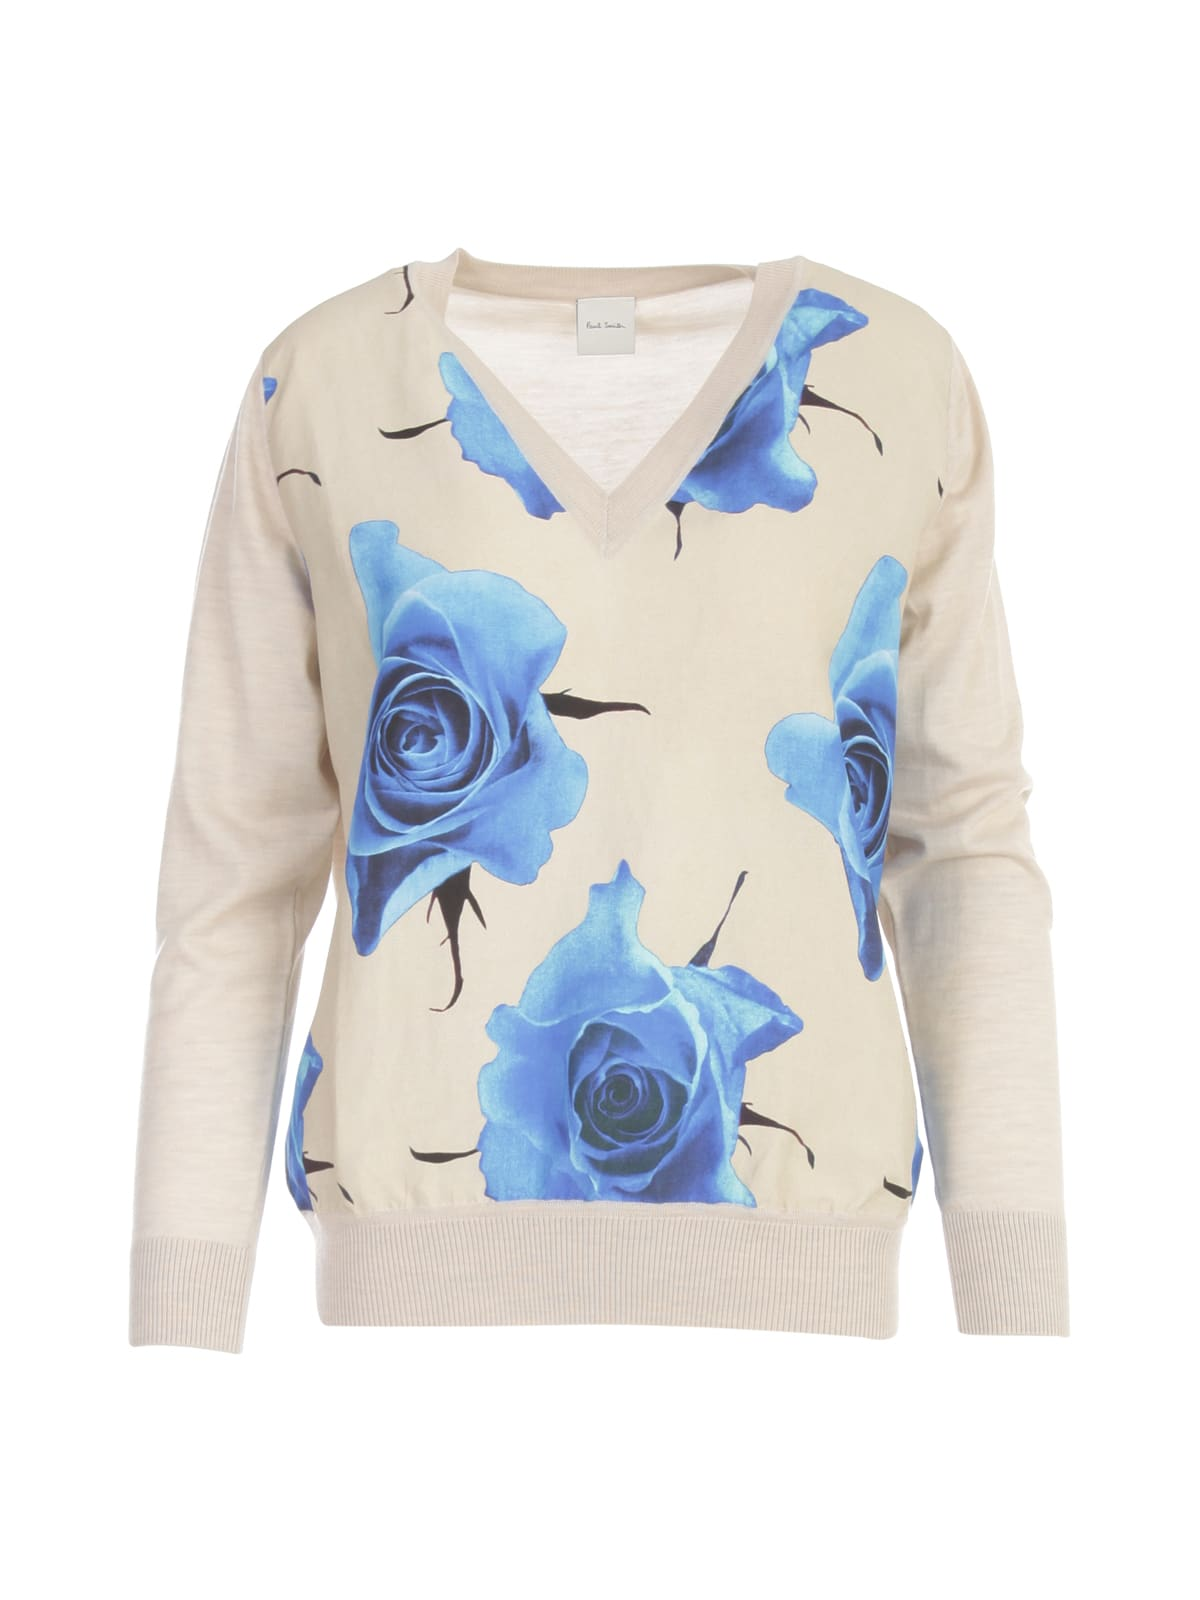 Paul Smith FLOWERS PRINTING V NECK SWEATER